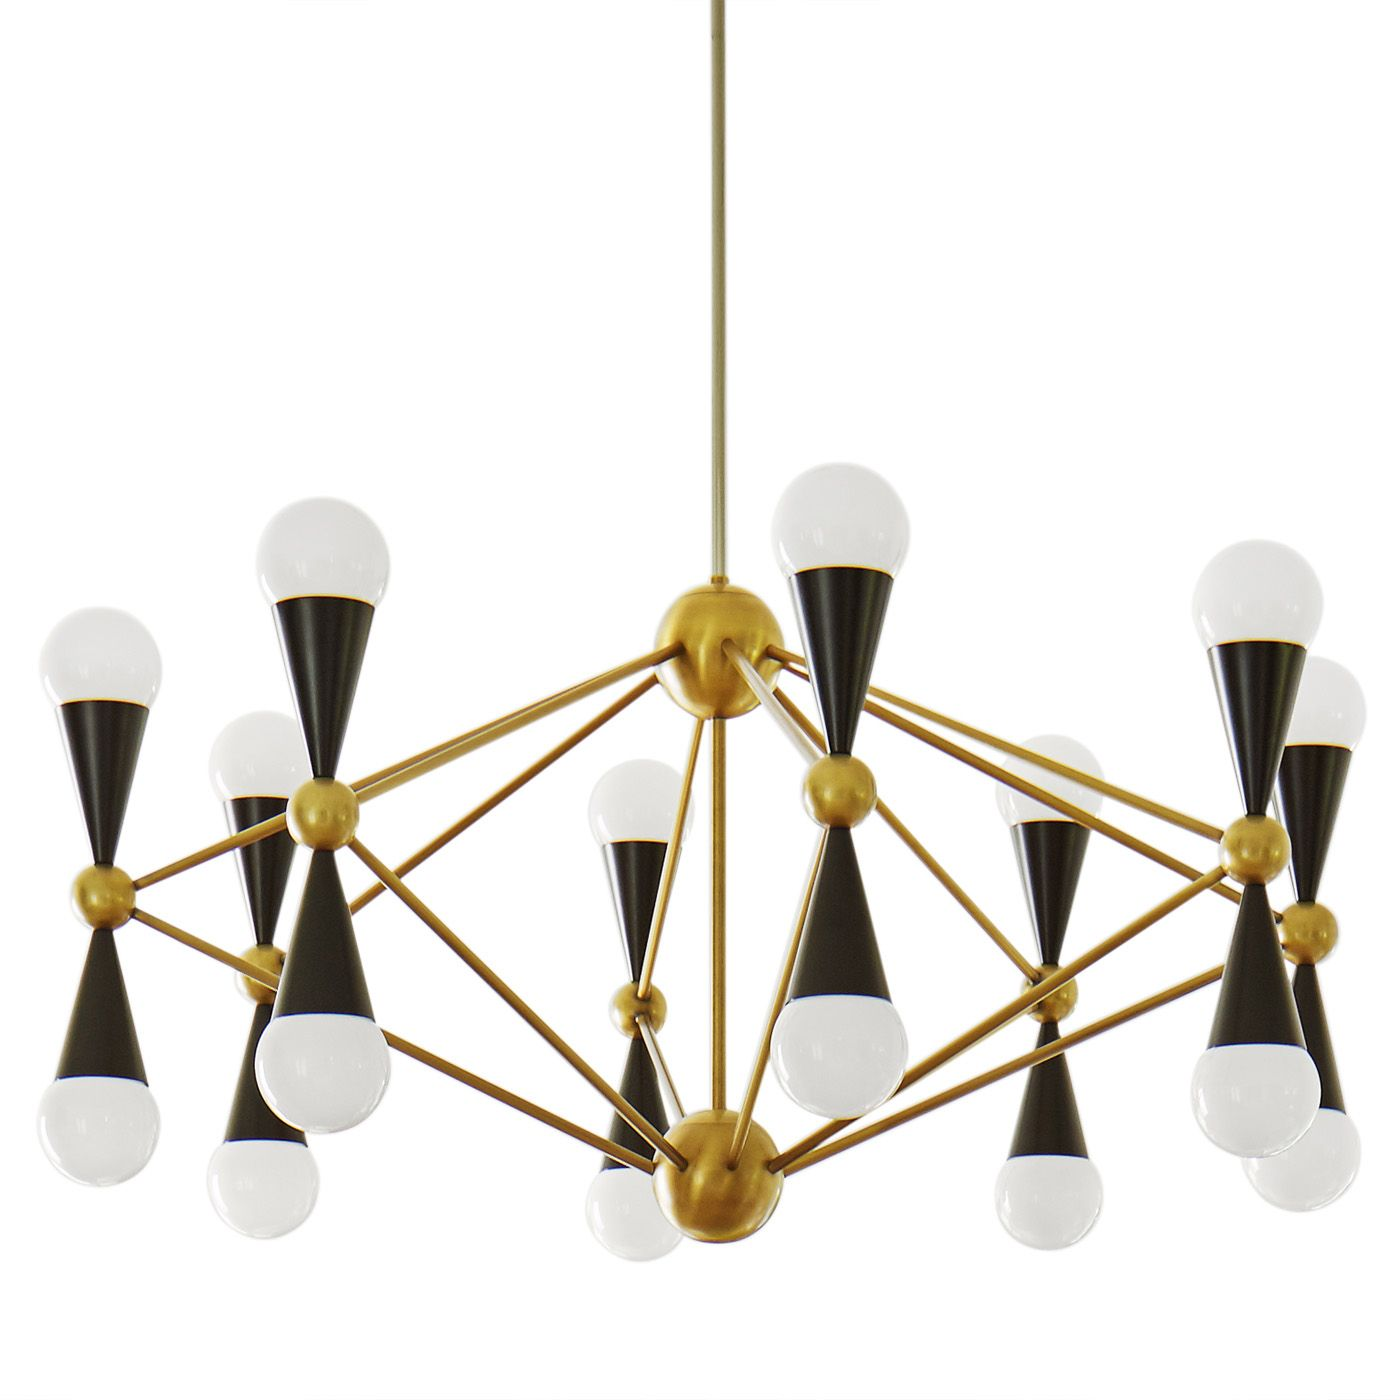 New Lighting Caracas 16 Light Chandelier This is AMAZING